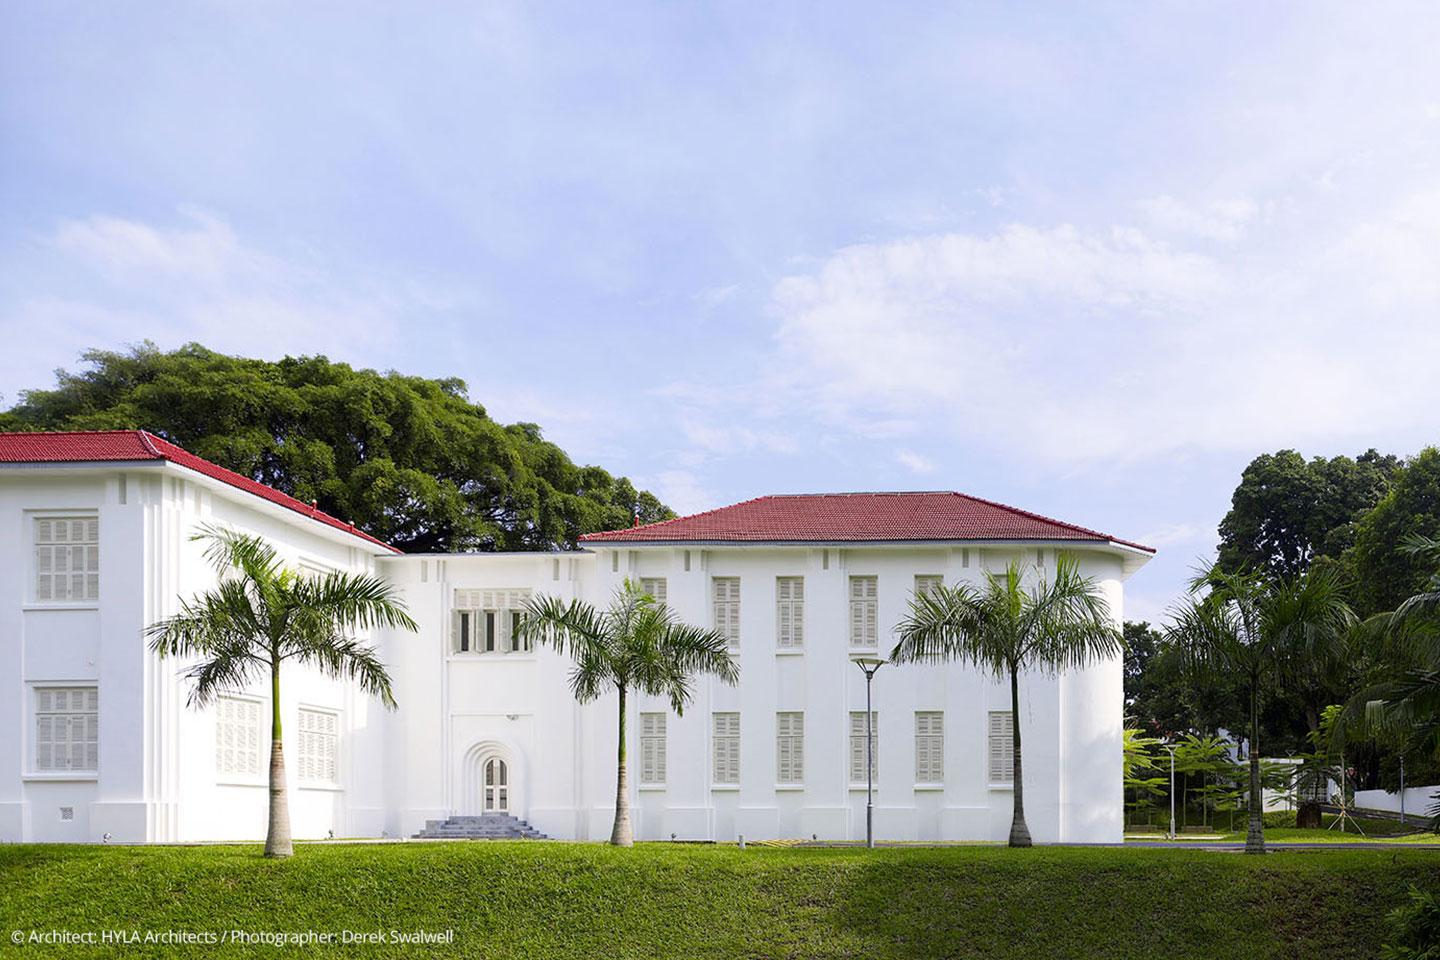 1440x960-ehl-campus-singapore-outside-1-copyright